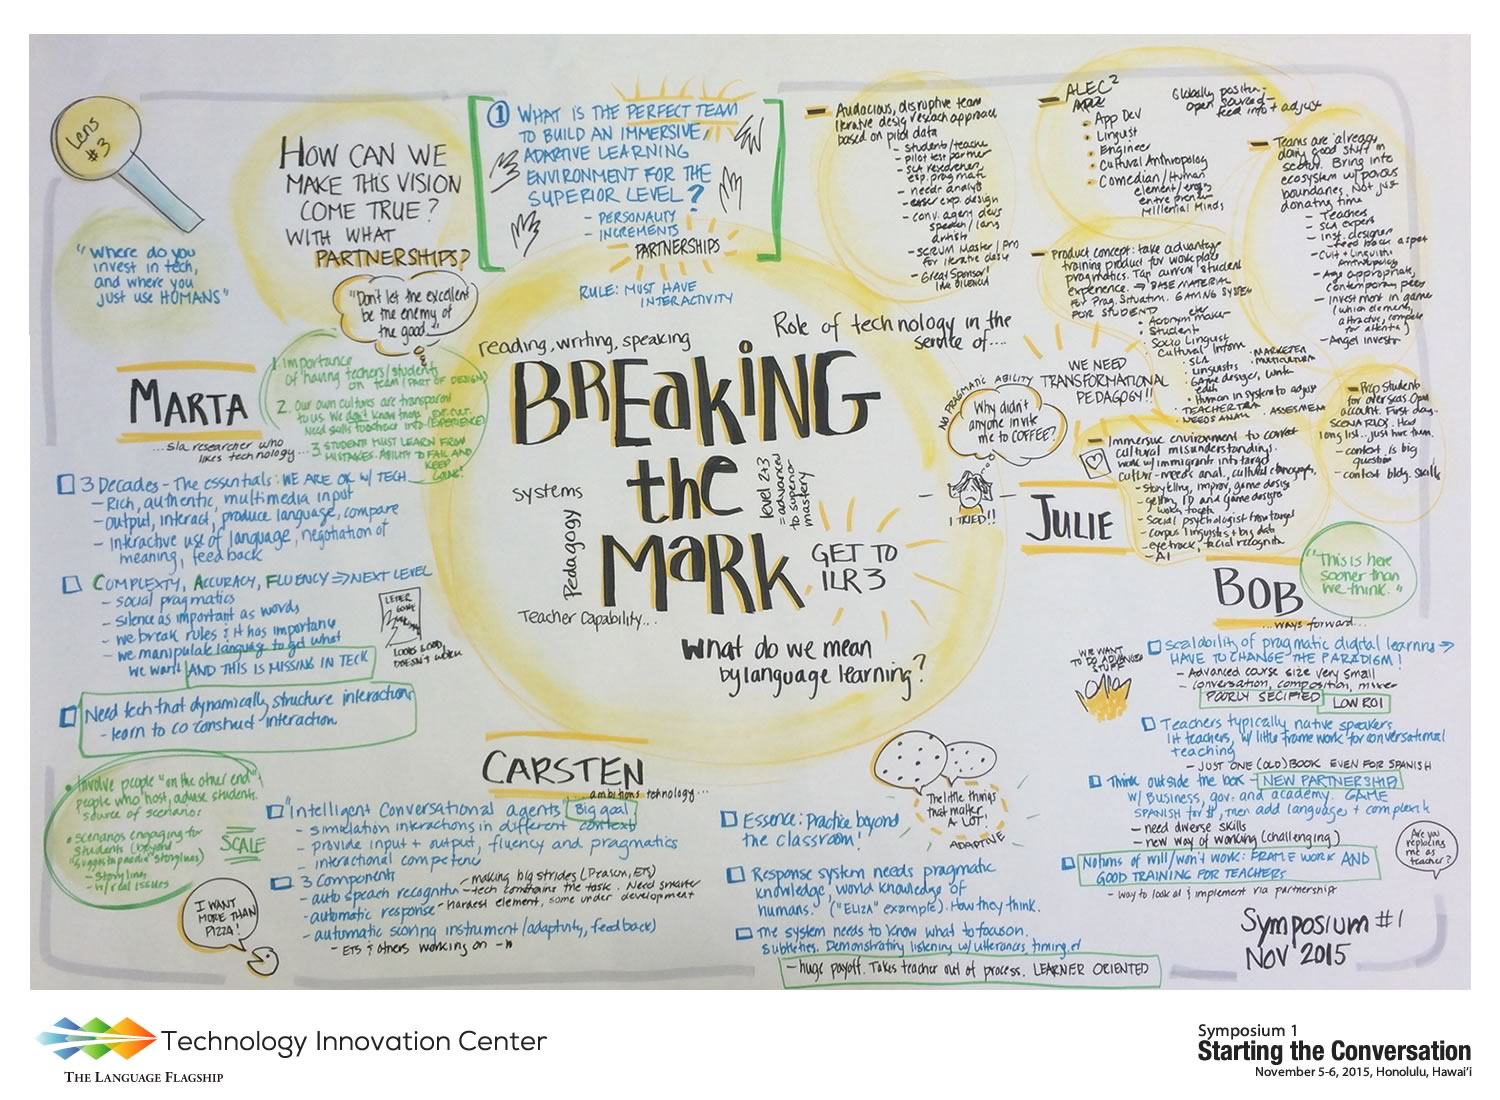 Dr. Sykes Breaking the Mark Symposium Poster